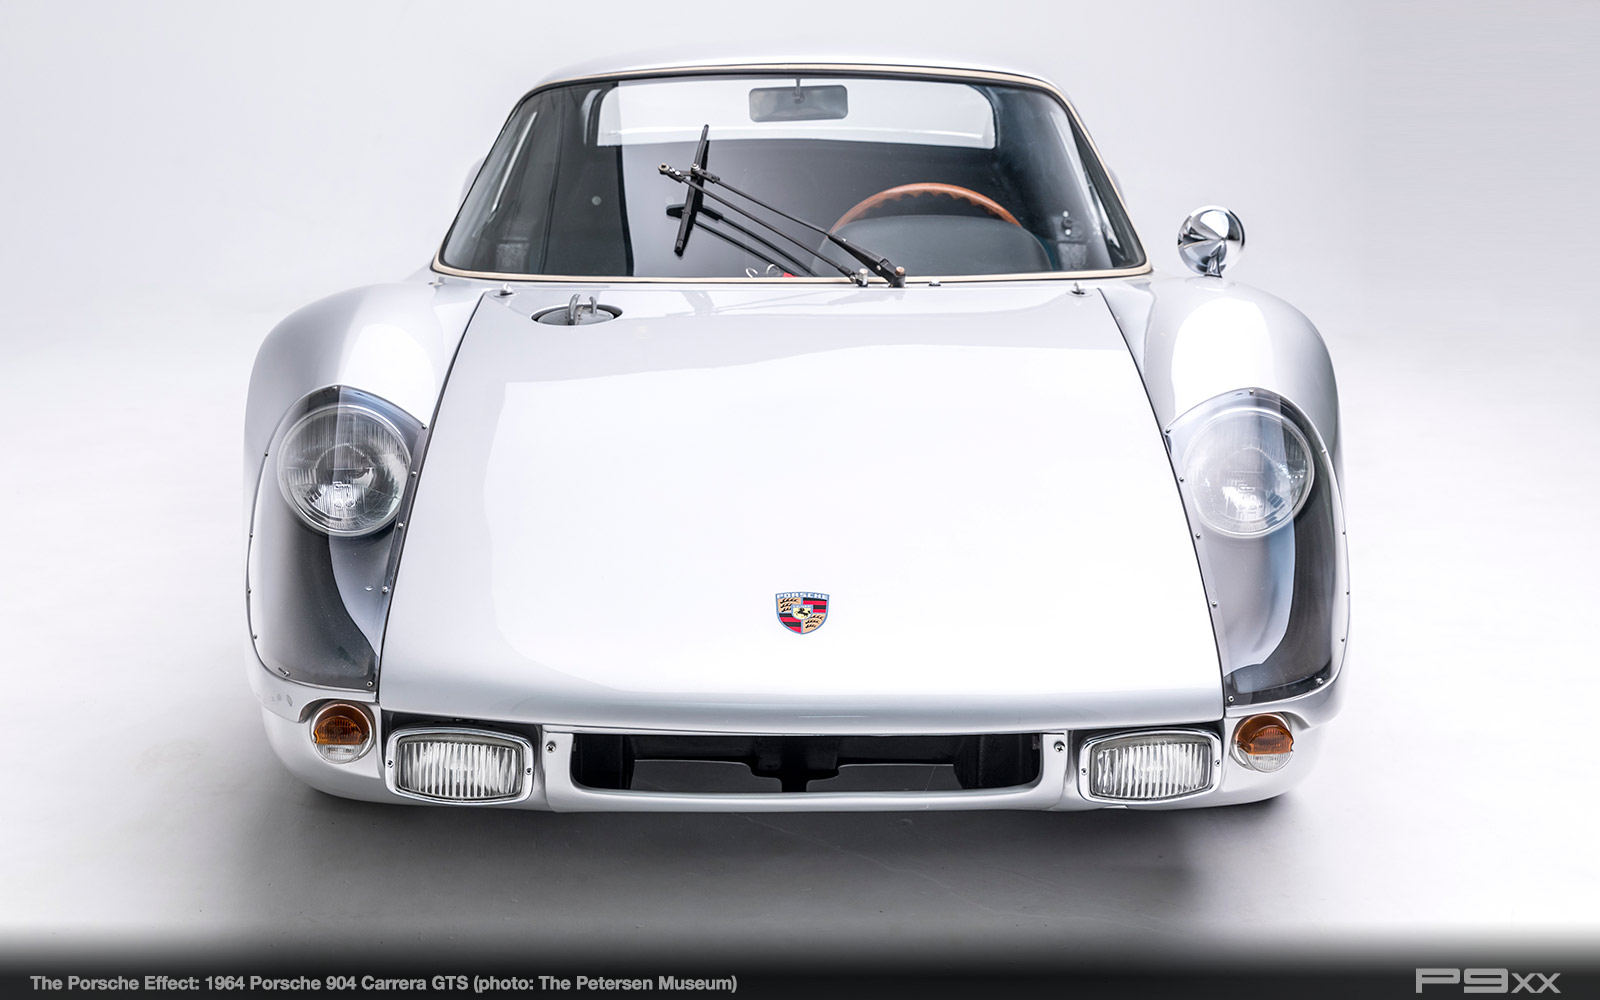 1964-904-Carrera-GTS-Petersen-Automotive-Museum-The-Porsche-Effect-353